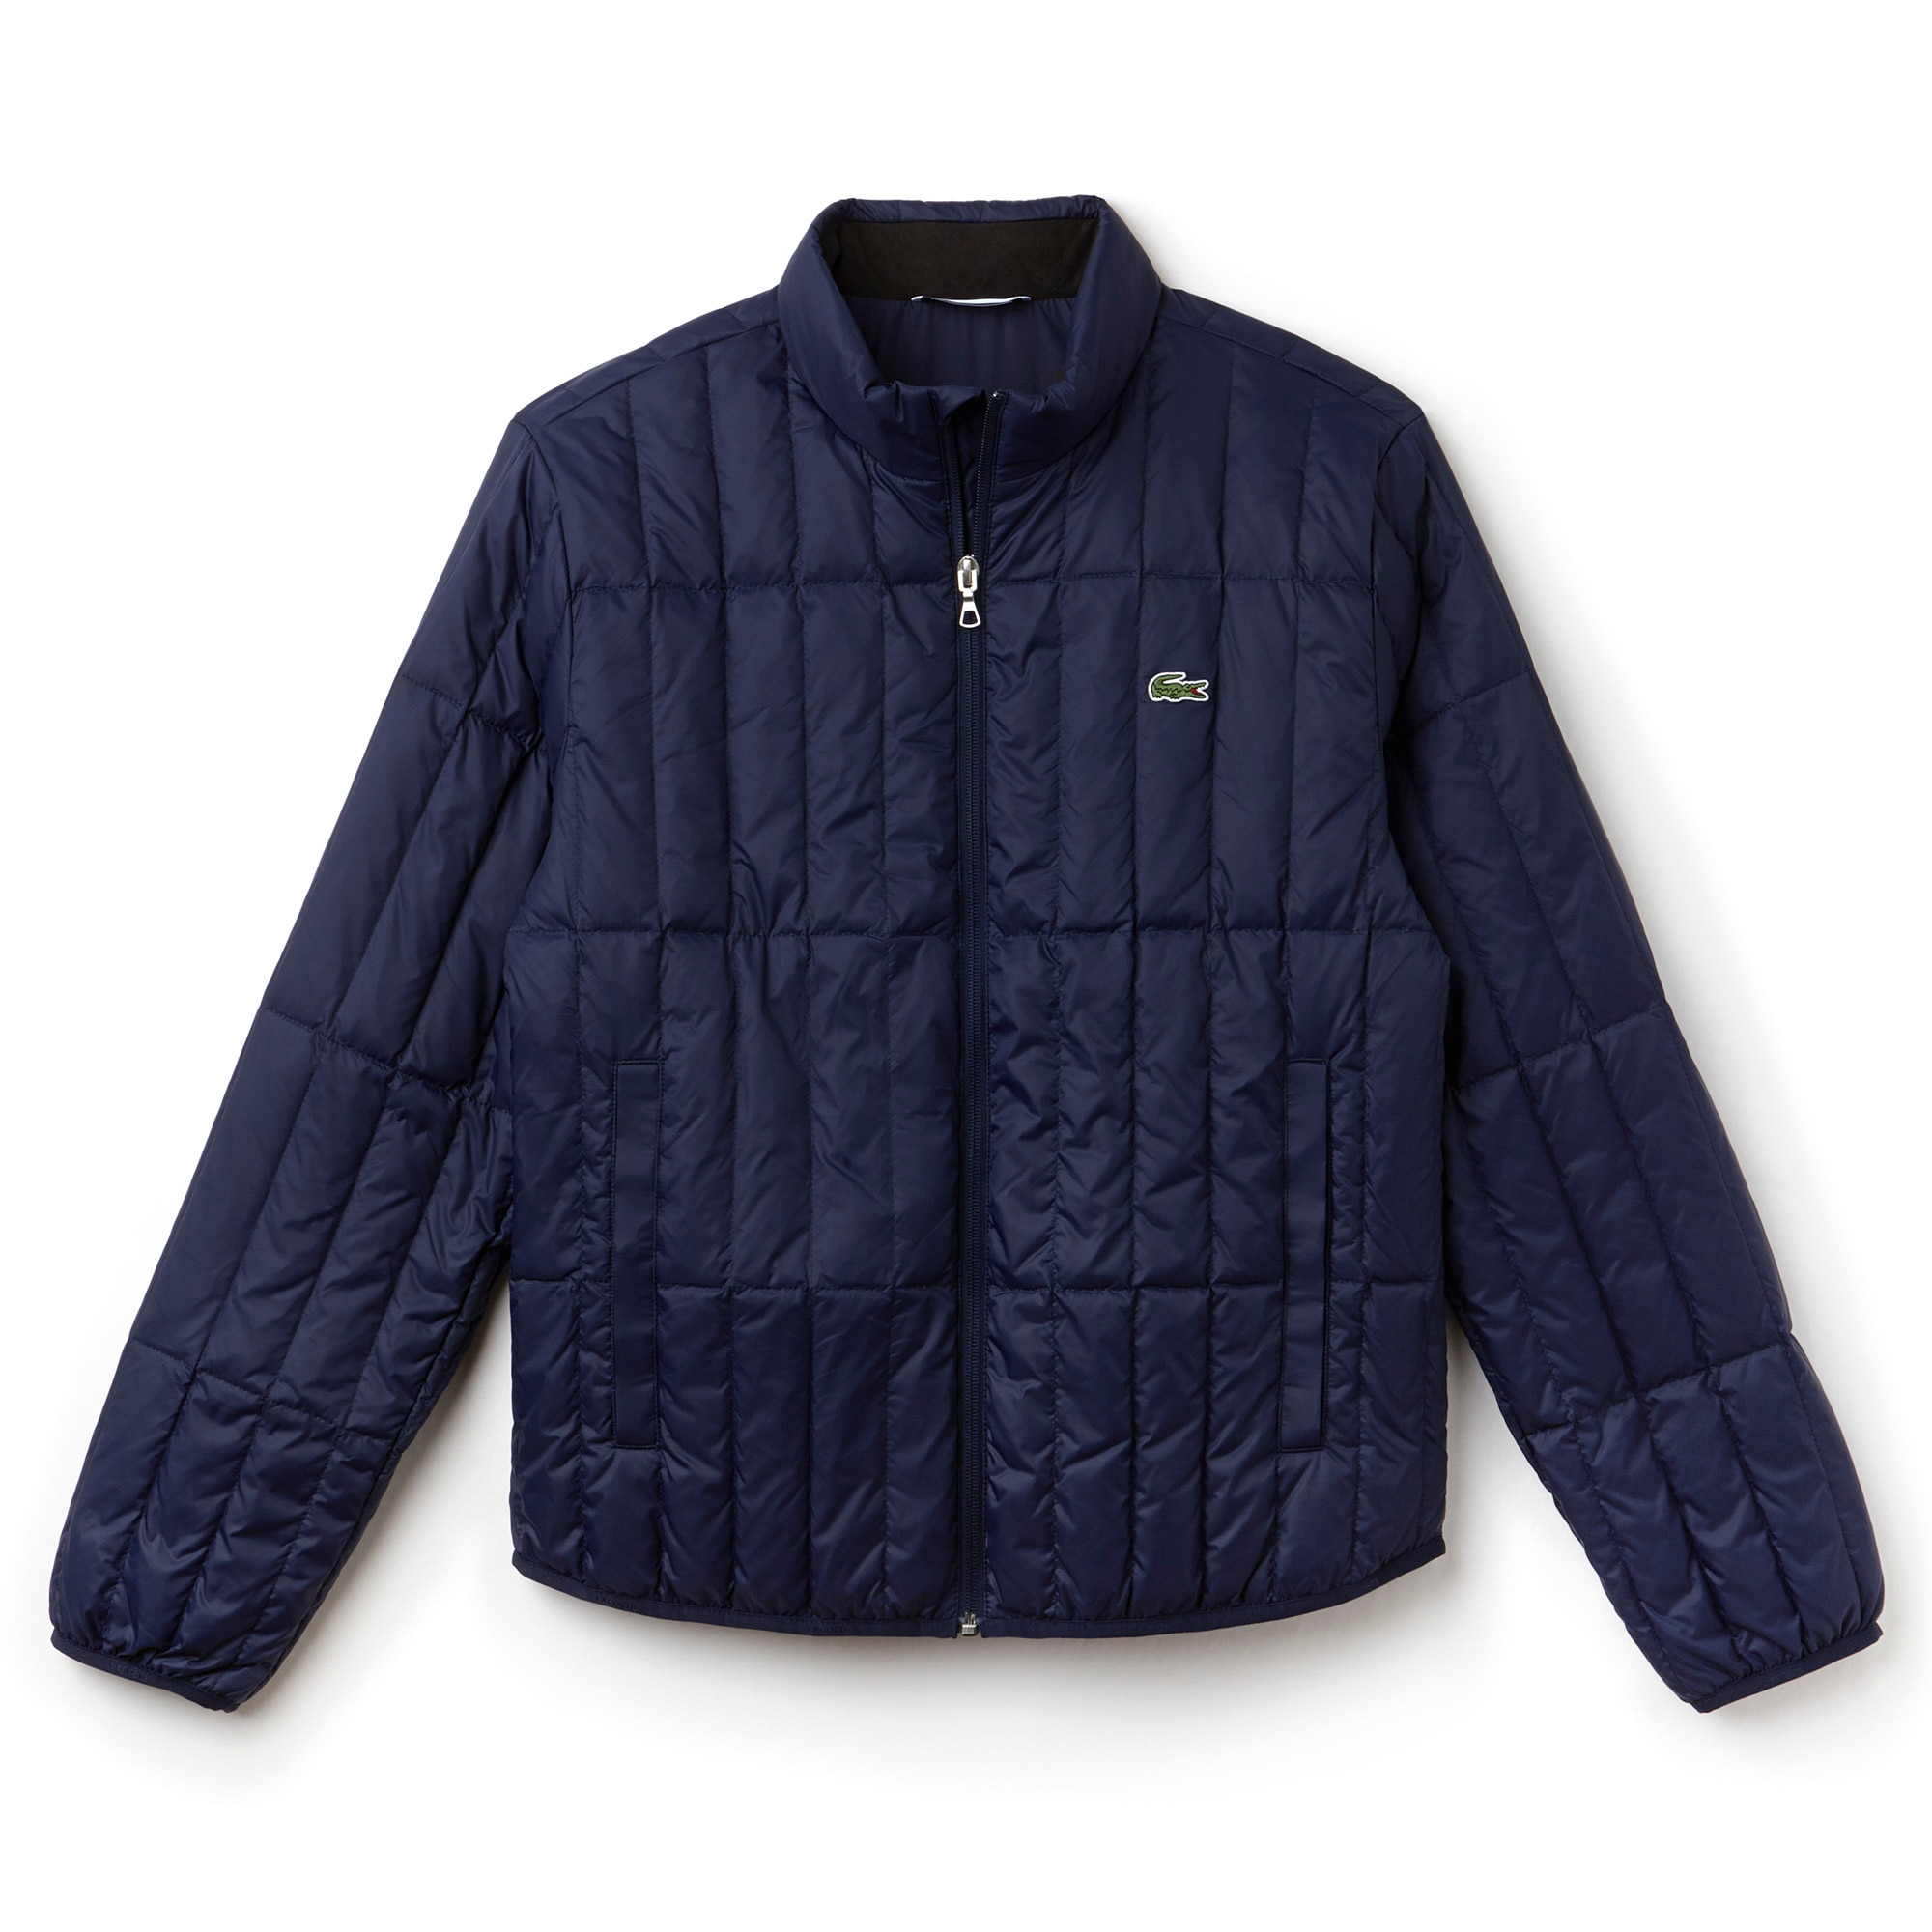 Lightweight down jacket lacoste